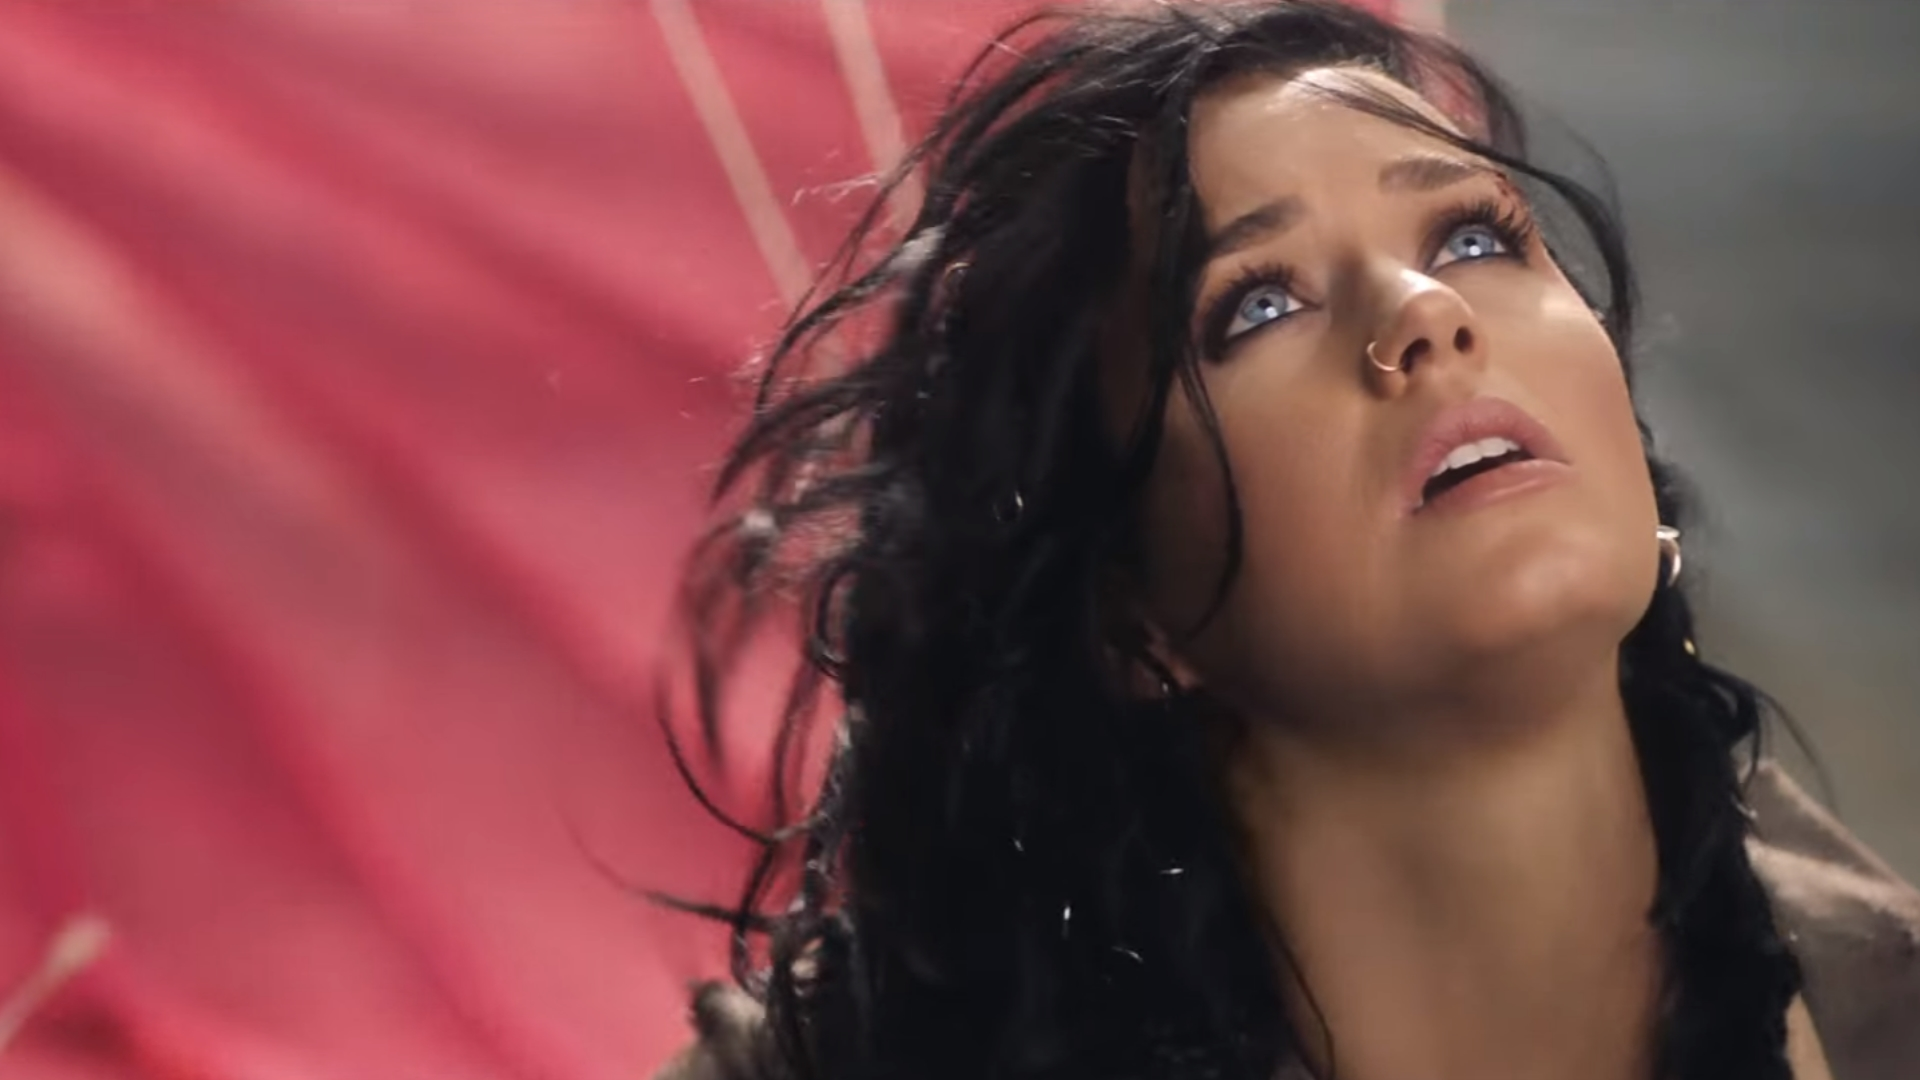 Katy Perry : YouTube Music Videos by Katy Perry Katy Perry